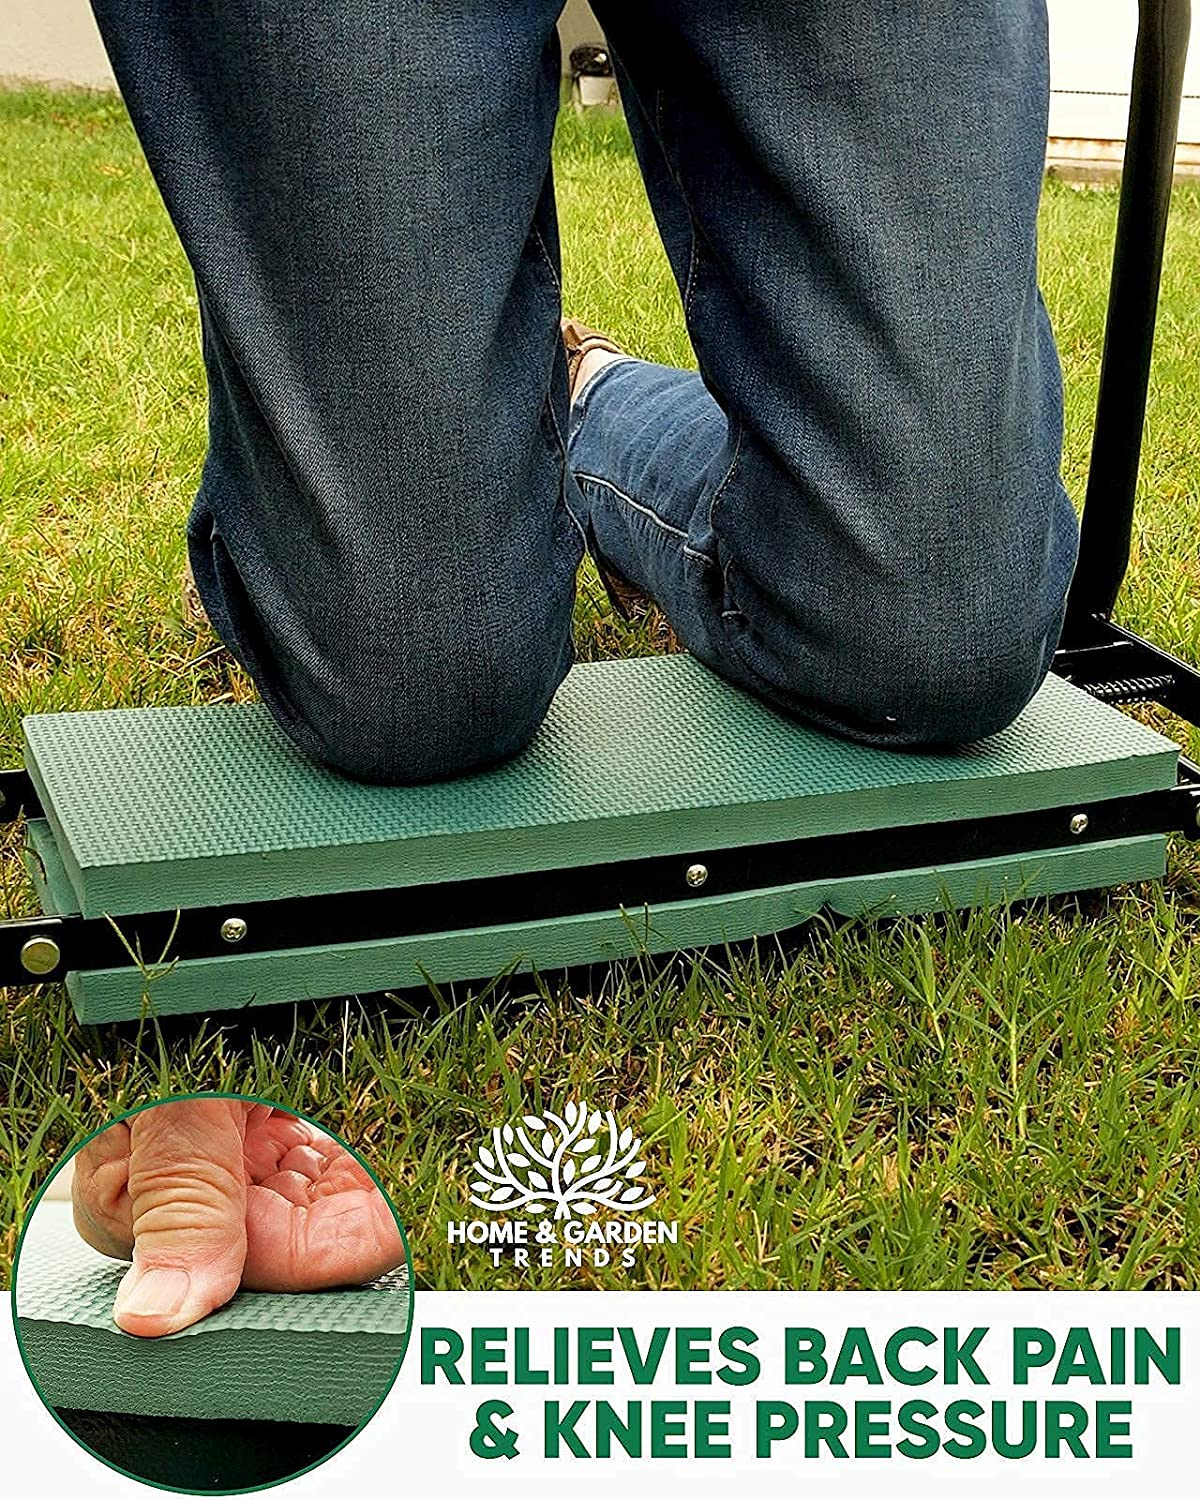 H&GT Garden Kneeler and Seat, Foldable Garden Stool Heavy Duty Gardening Bench for Kneeling and Sitting to Prevent Knee & Back Pain, Great Gift For Gardeners, Grandparents, Mom & Dad : Patio, Lawn & Garden